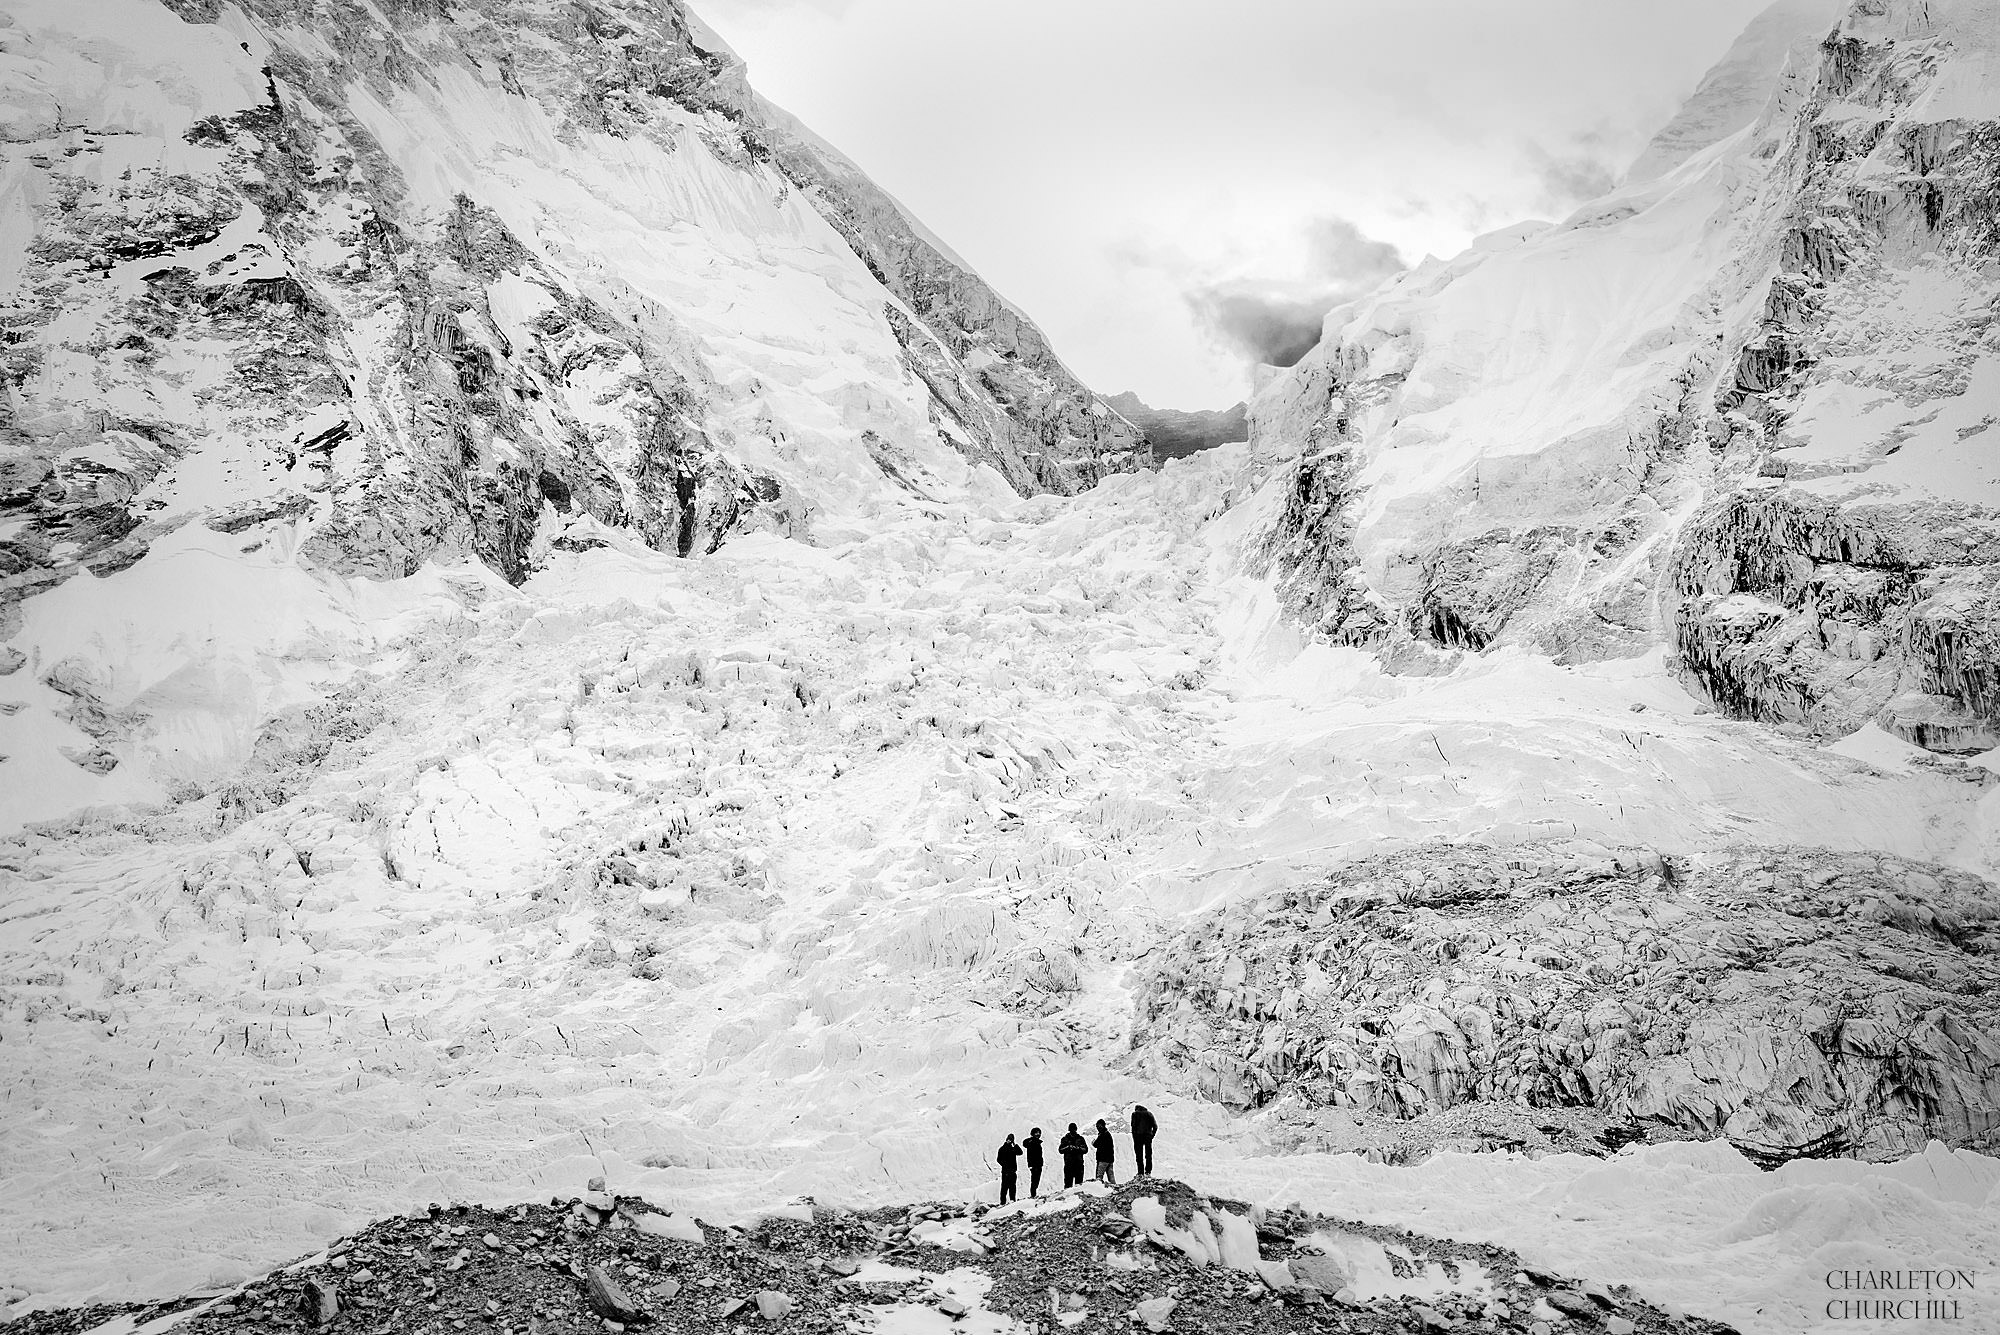 black and white photo of sherpas below khumbu ice-fall and Nuptse face